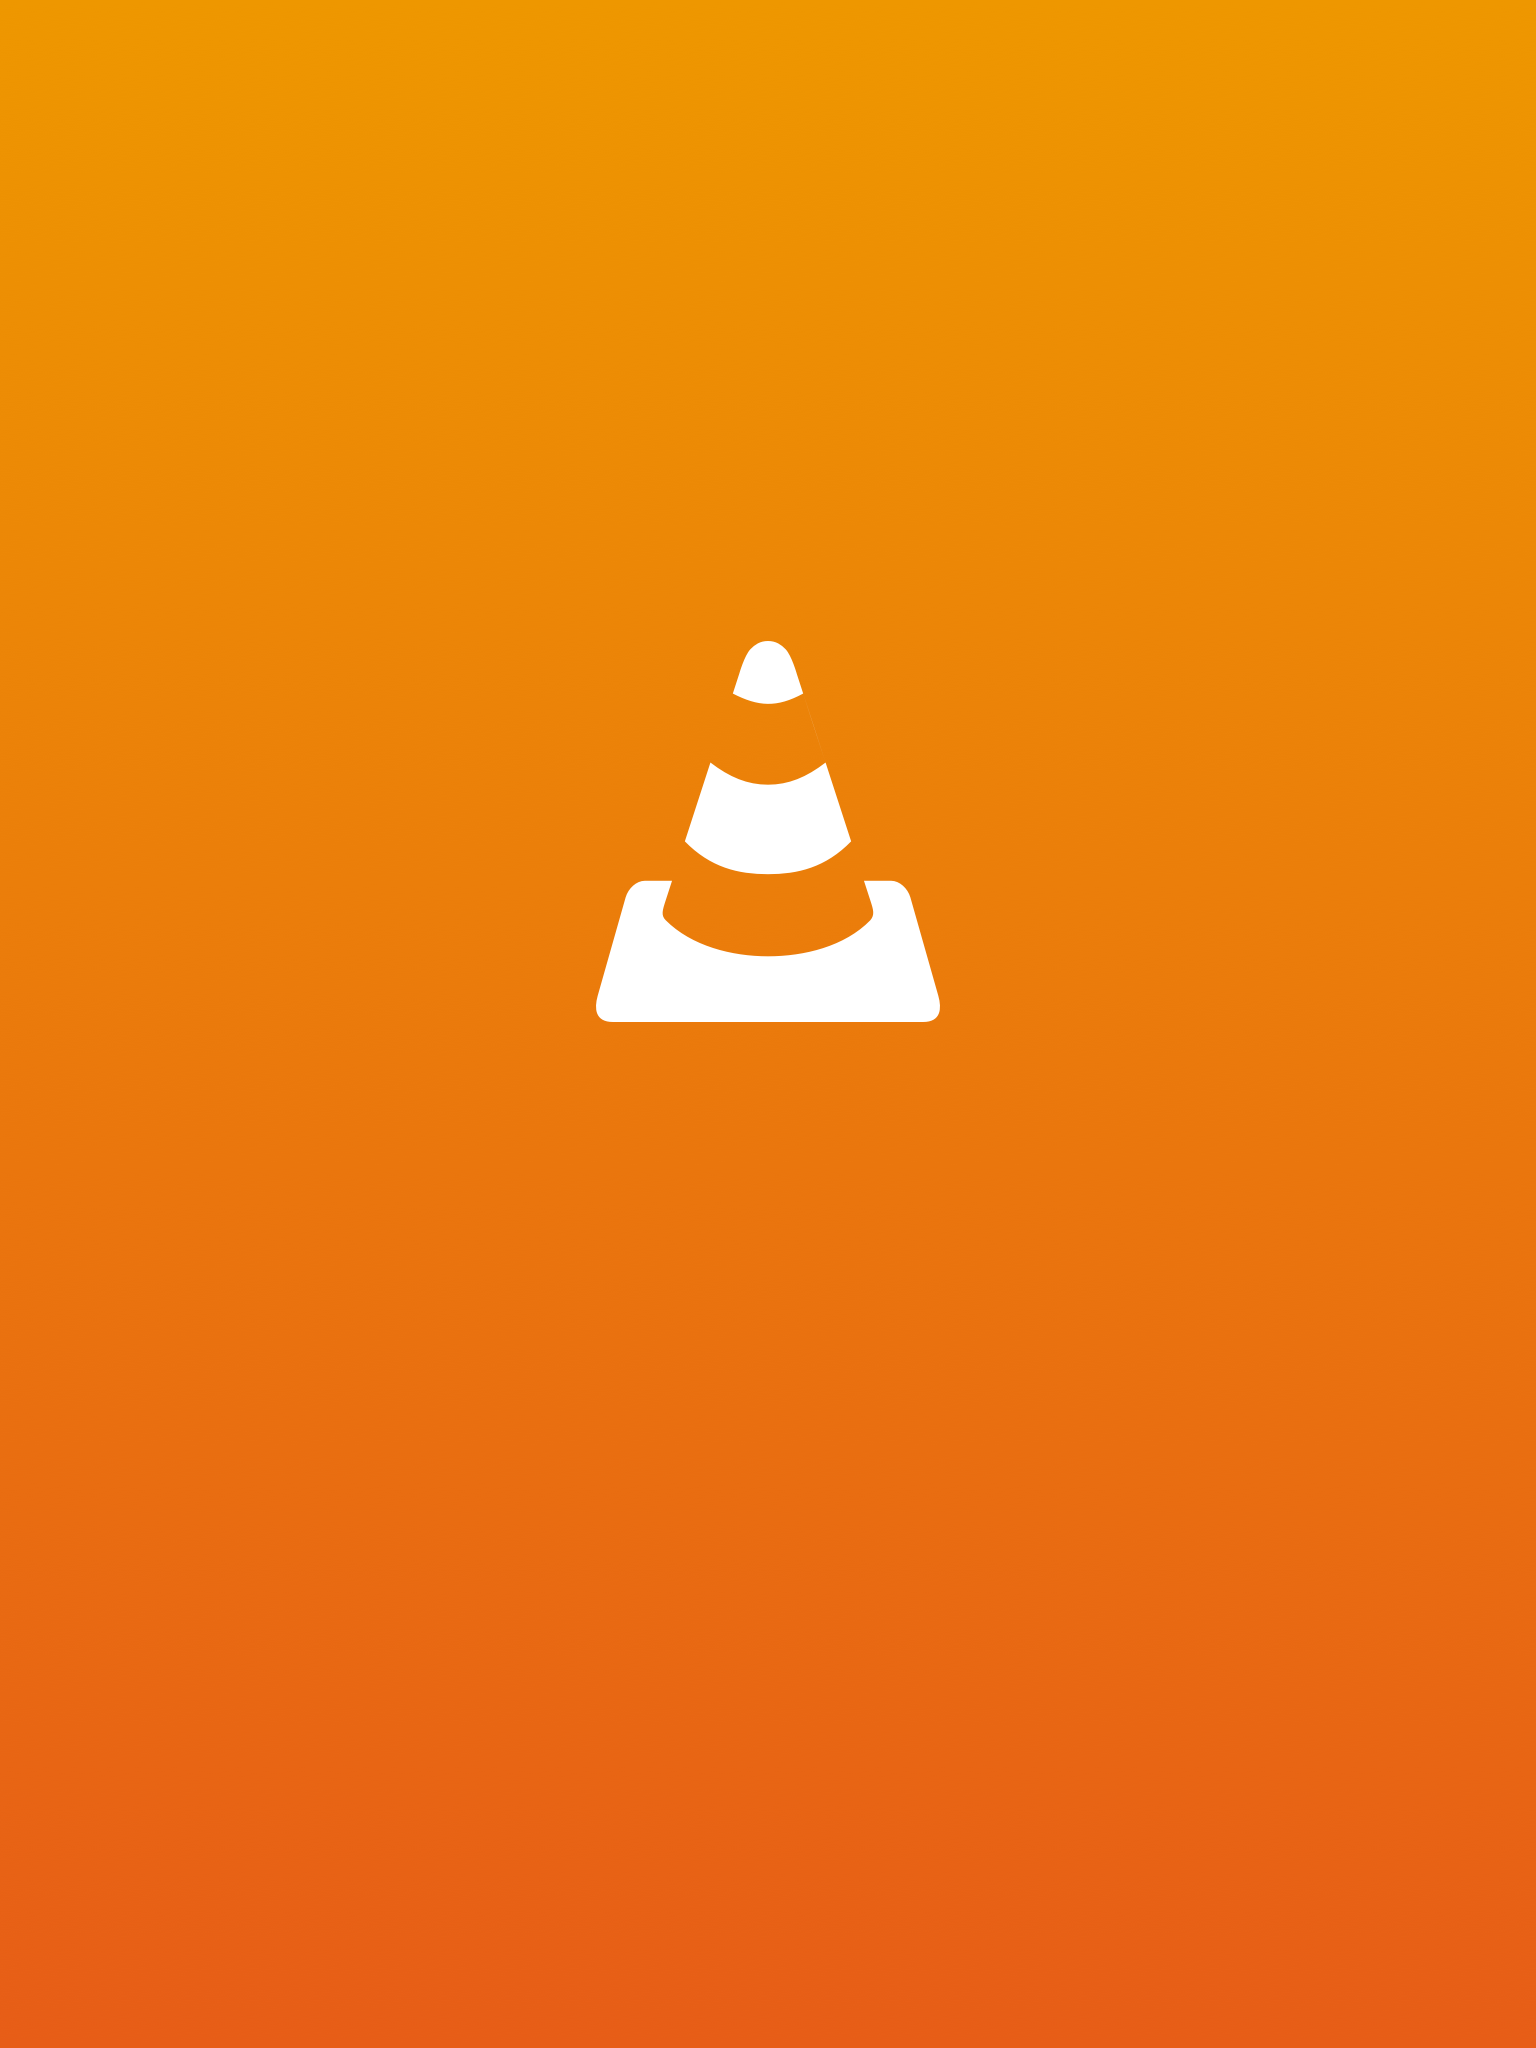 vlc-ios/Images.xcassets/LaunchImage.launchimage/iPad@2x-1.png